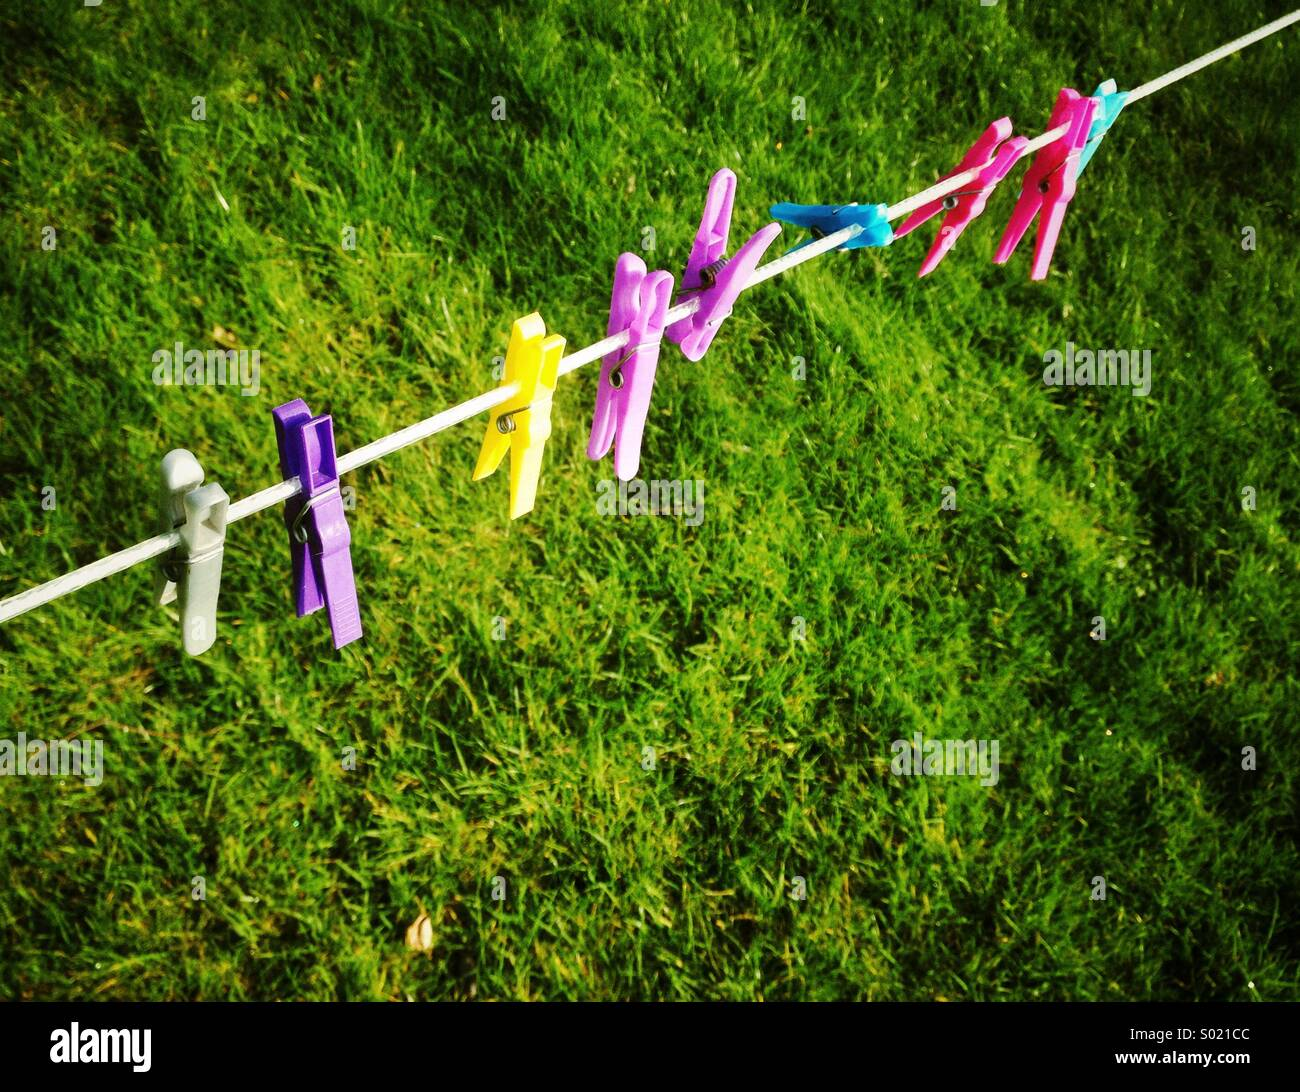 Clothes pegs, empty clothes line - Stock Image